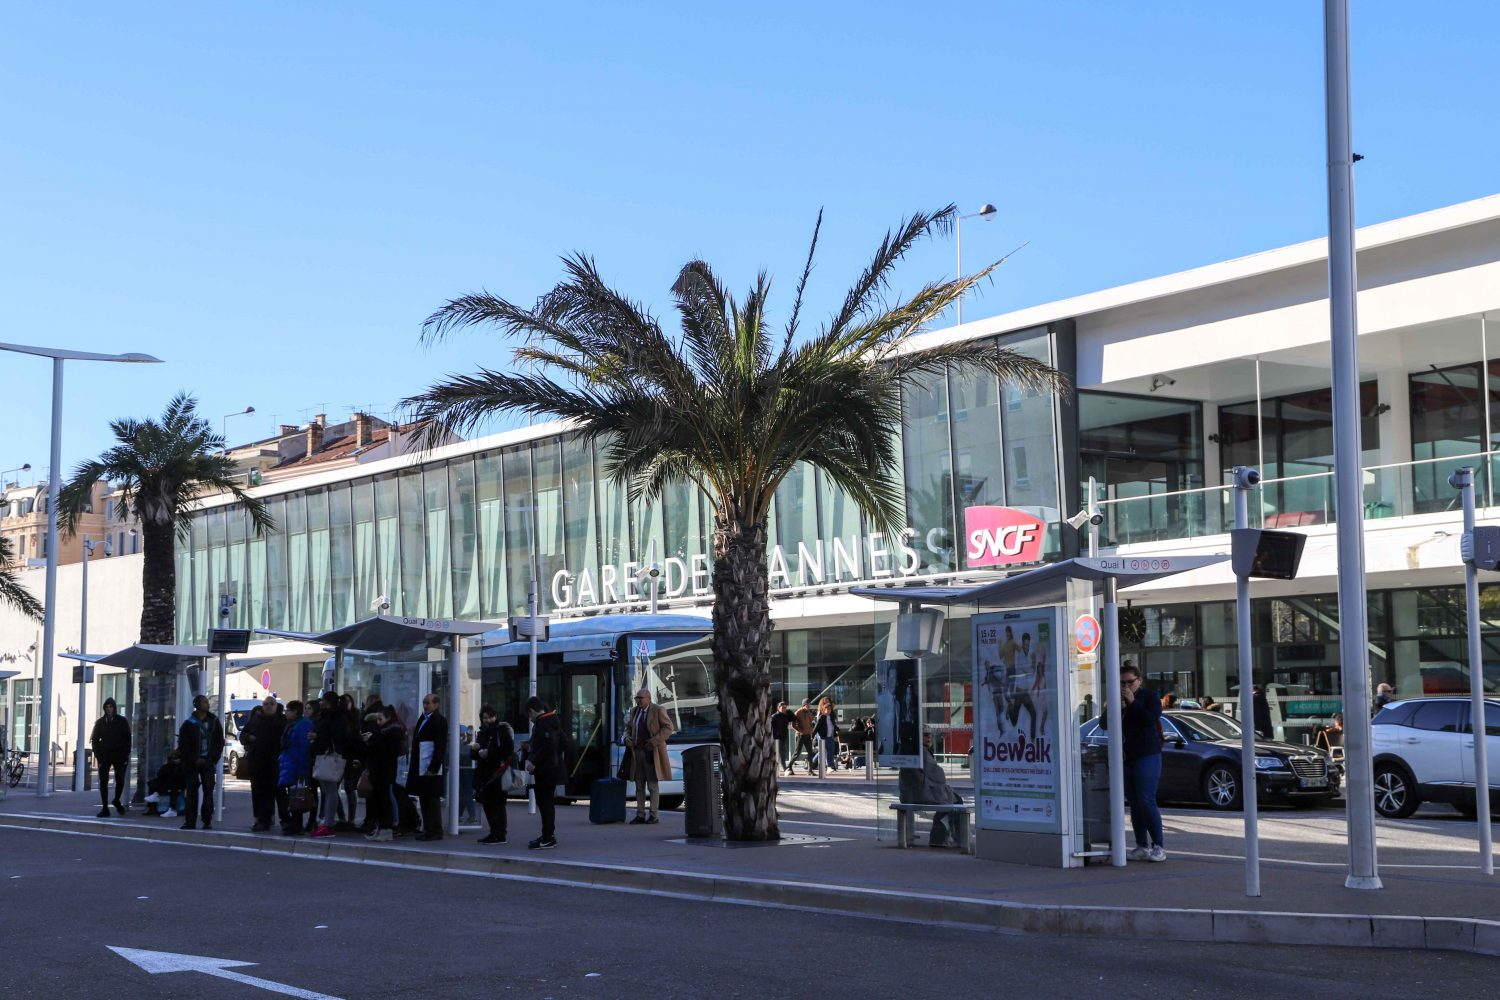 GAre de Cannes - Cannes train station